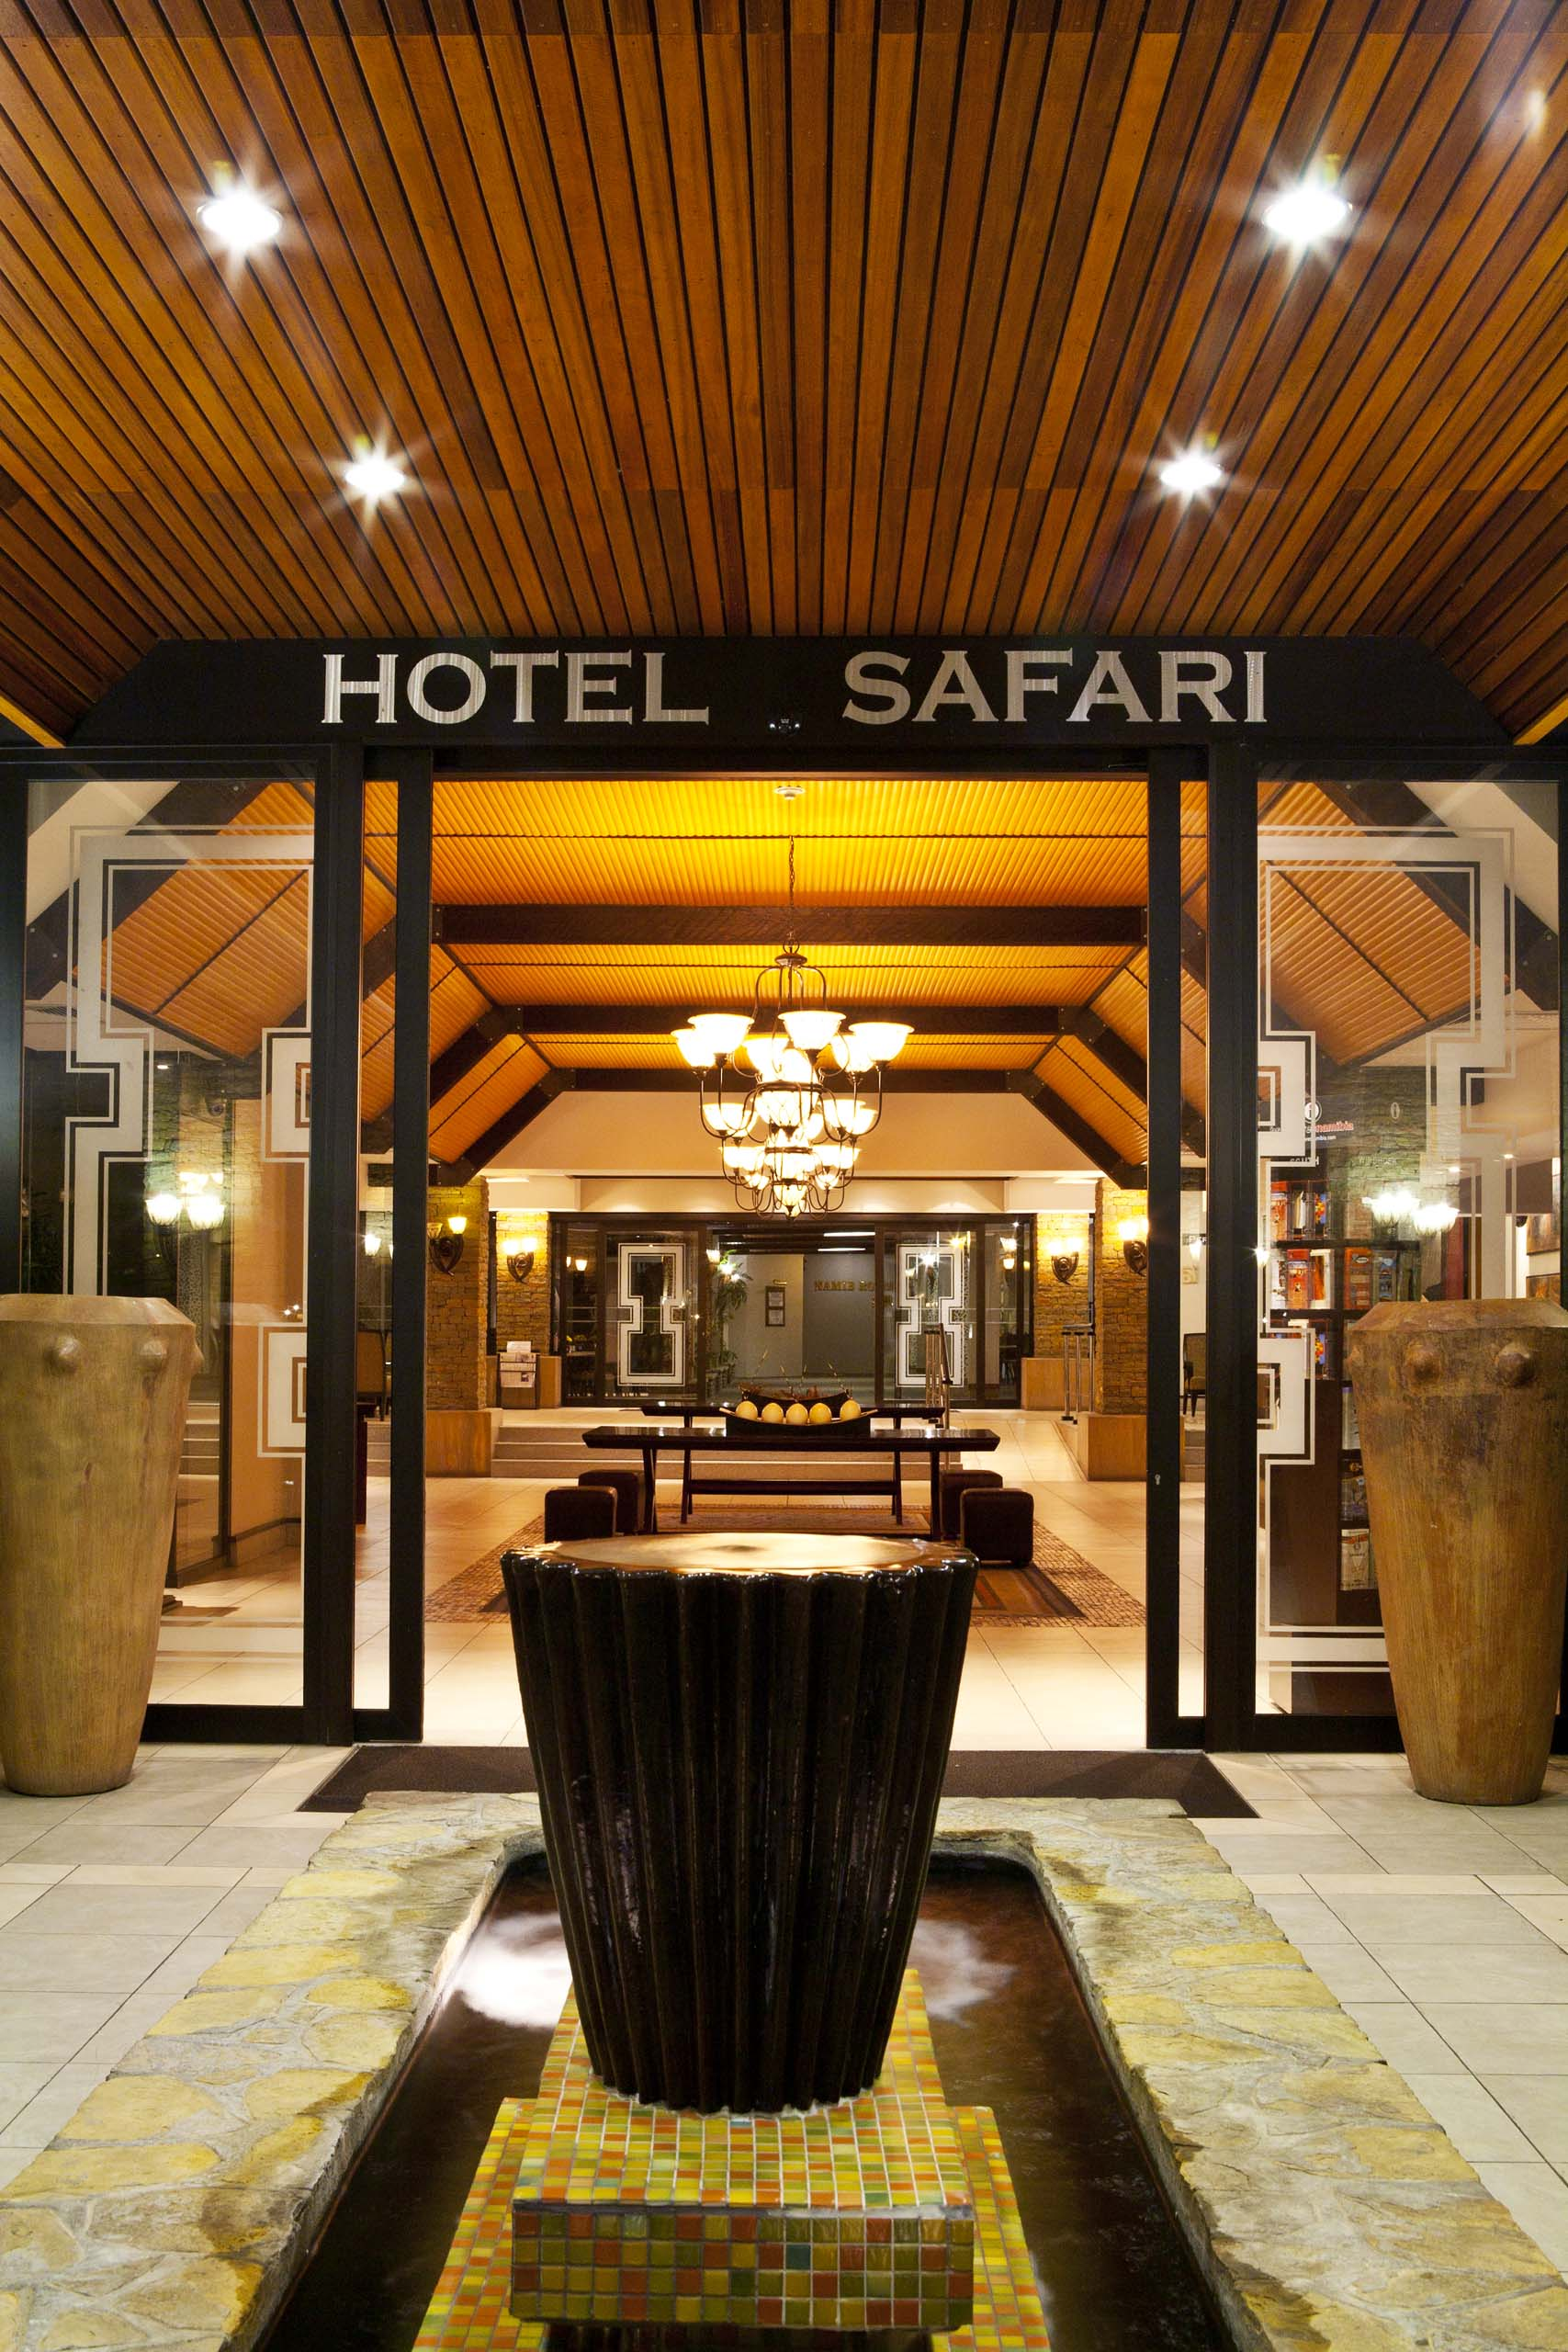 The General Phone Number >> Safari Court Hotel and Hotel Safari | Windhoek - Hotels